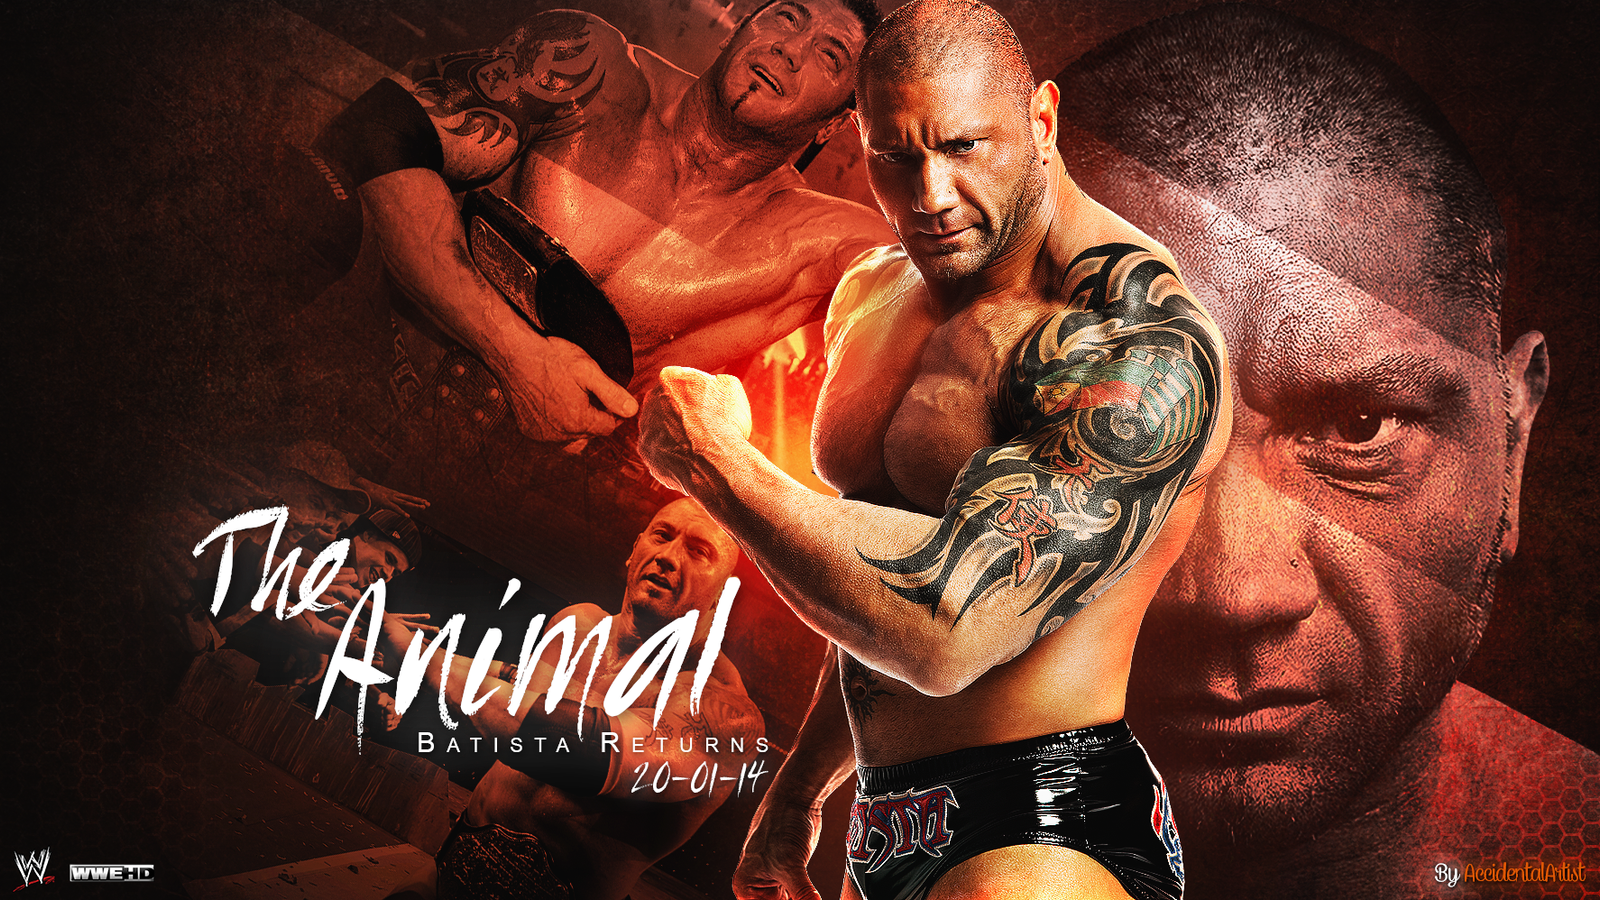 the animal batista returns 20 01 14 by accidentalartist6511 d6zjq0q - Polling For Sports Competition May 2014